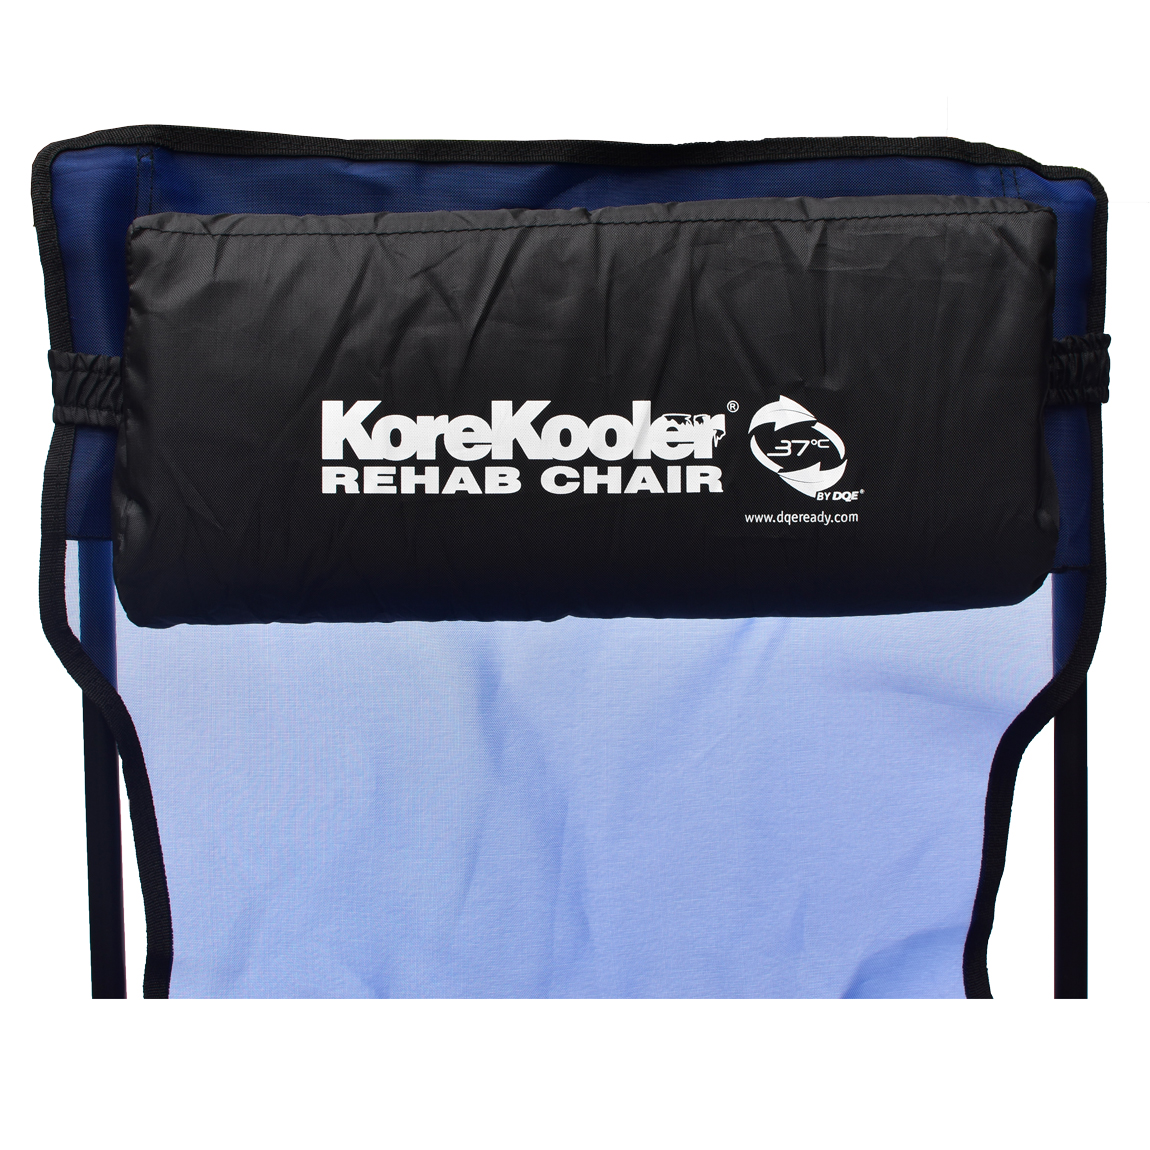 Kore Kooler Chair Headrest image